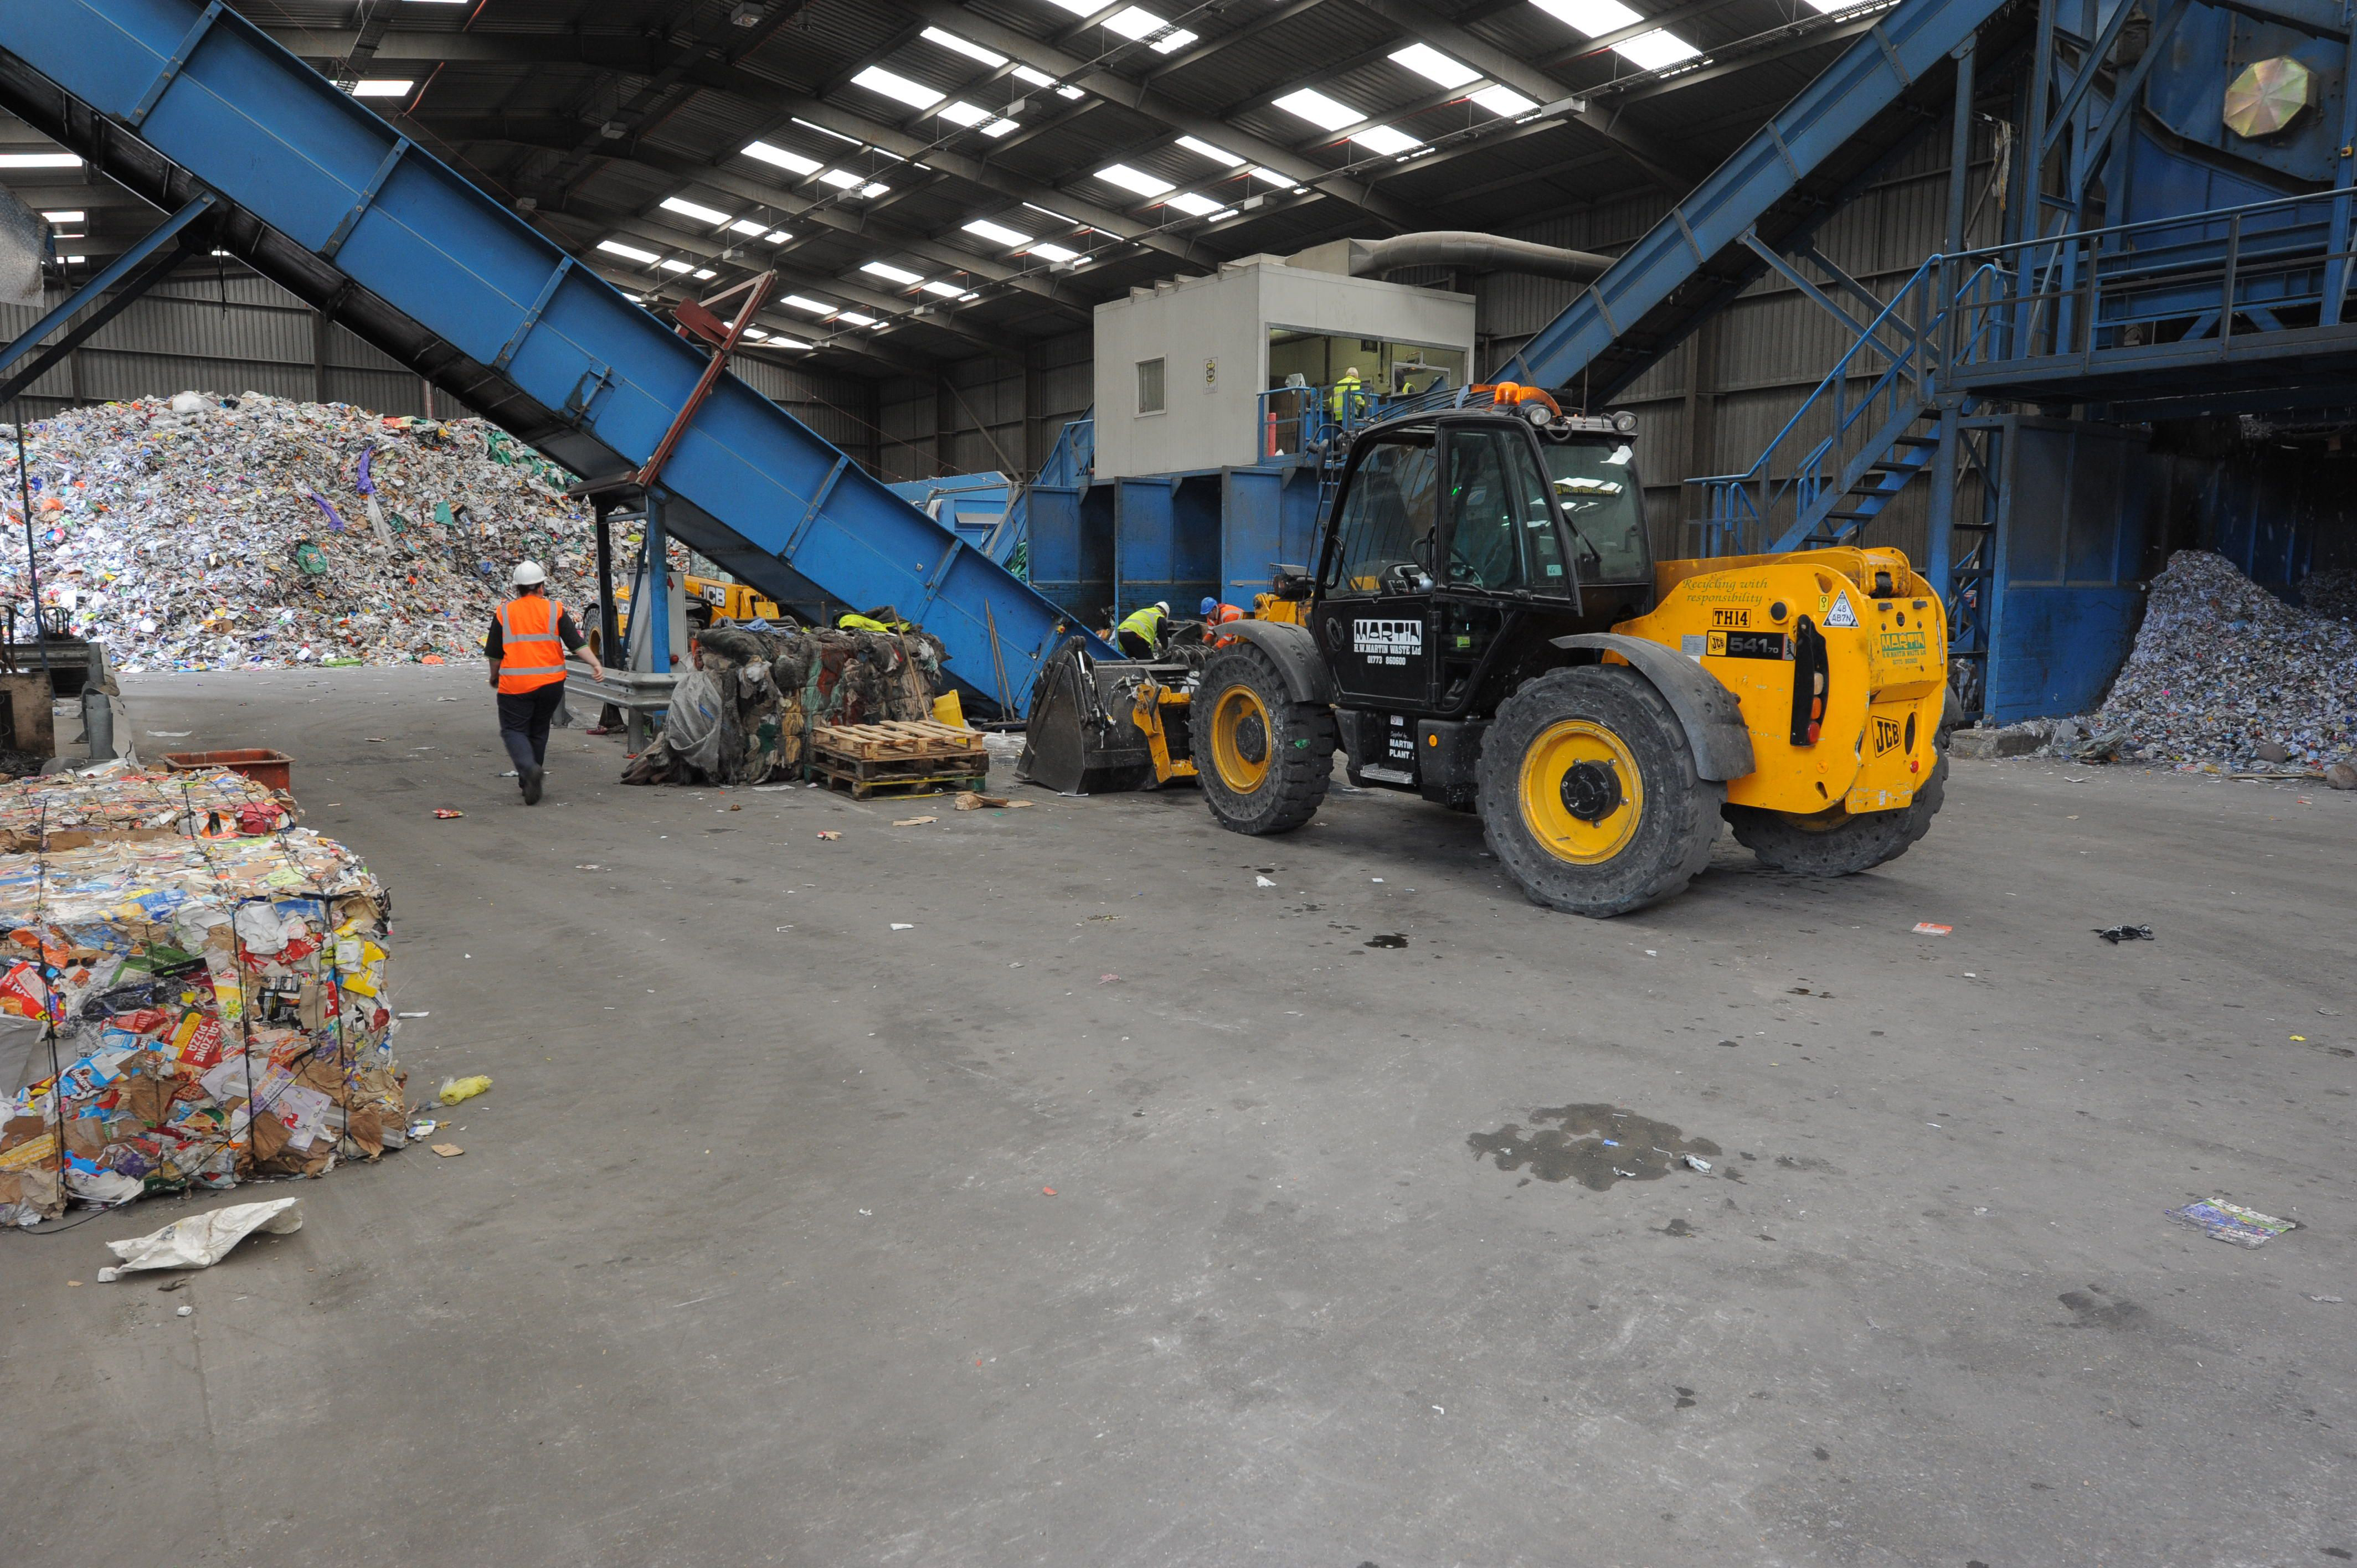 Materials recycling facilities mrf premier waste for Household waste recycling centre design